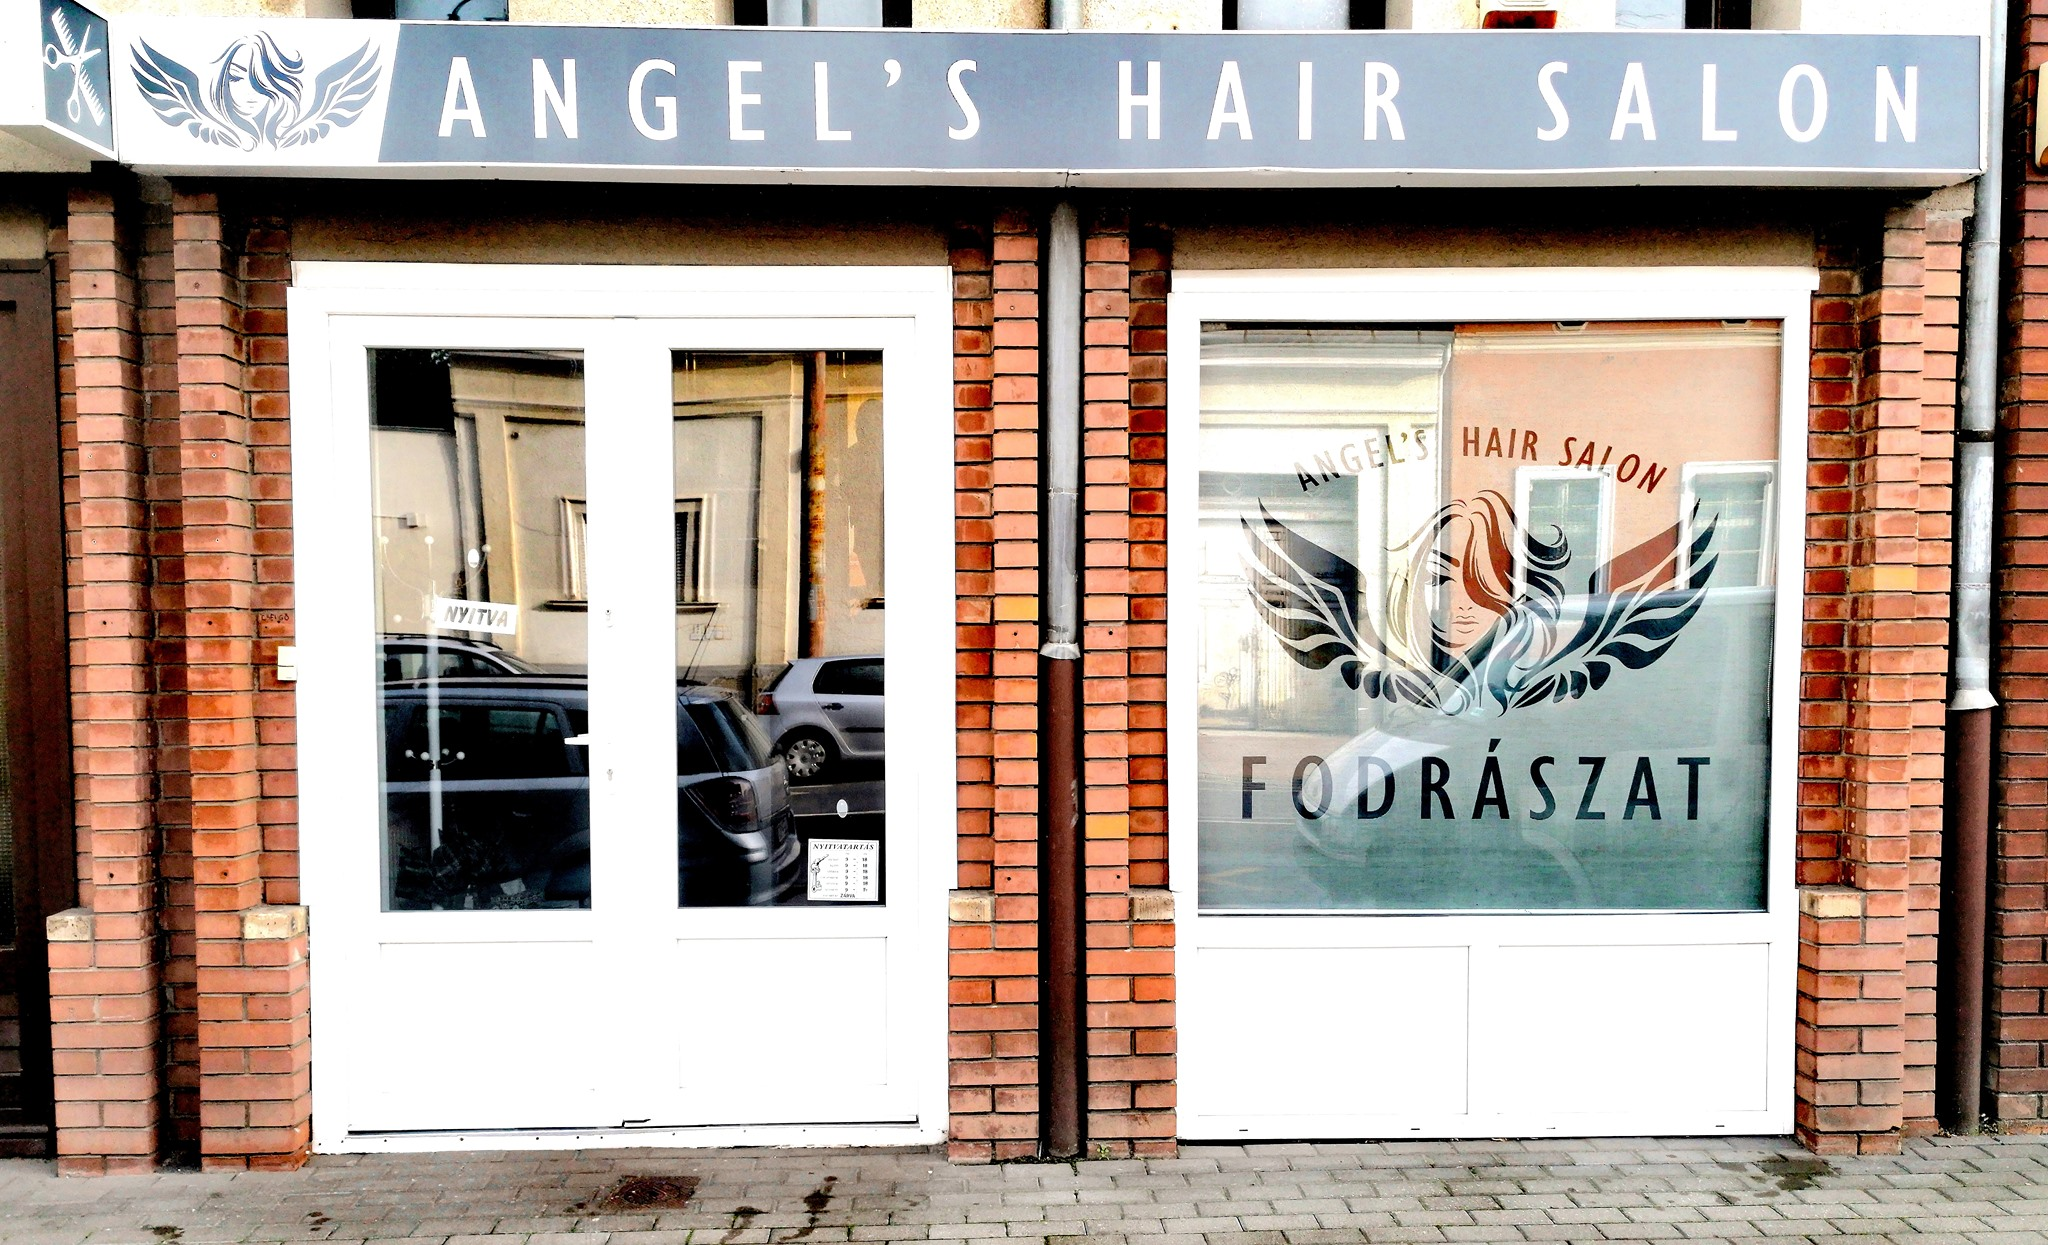 Angel's Hair Salon - Fodrászat